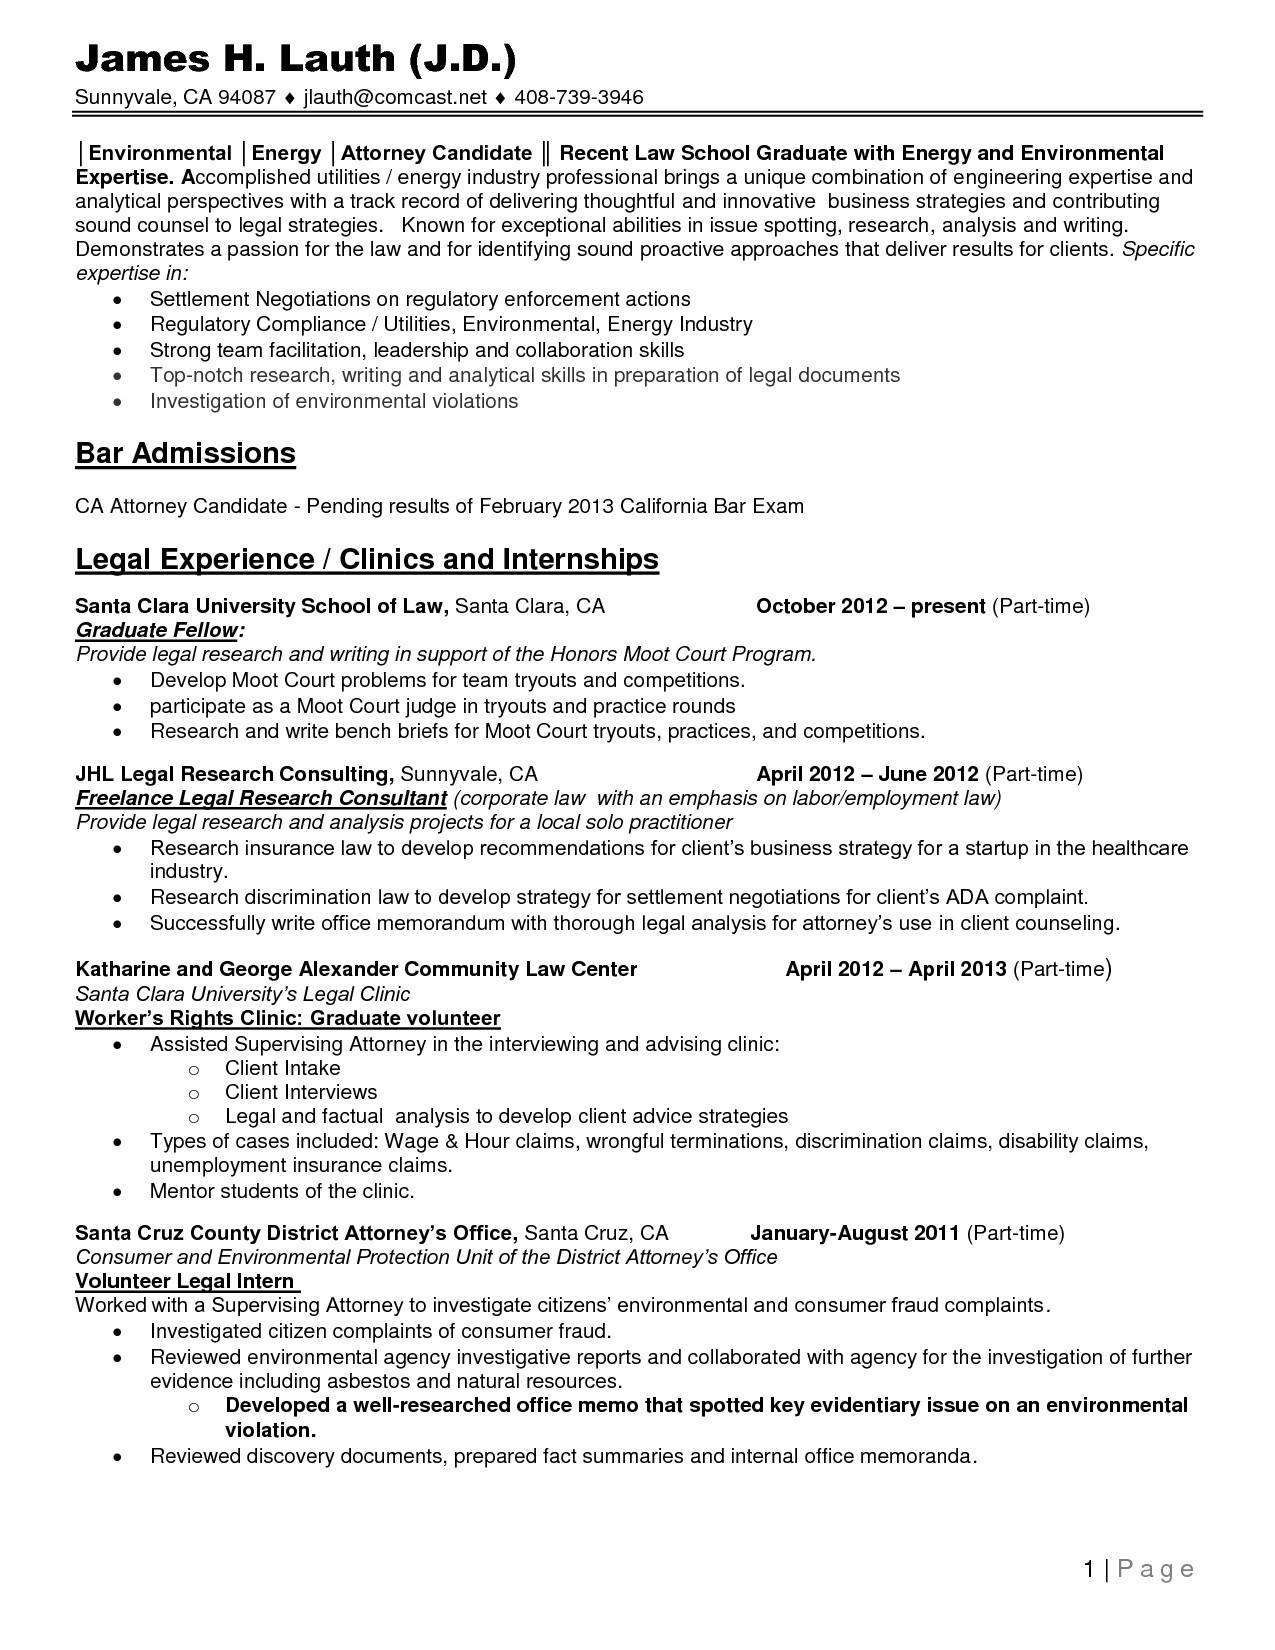 Resume Template For Law Students